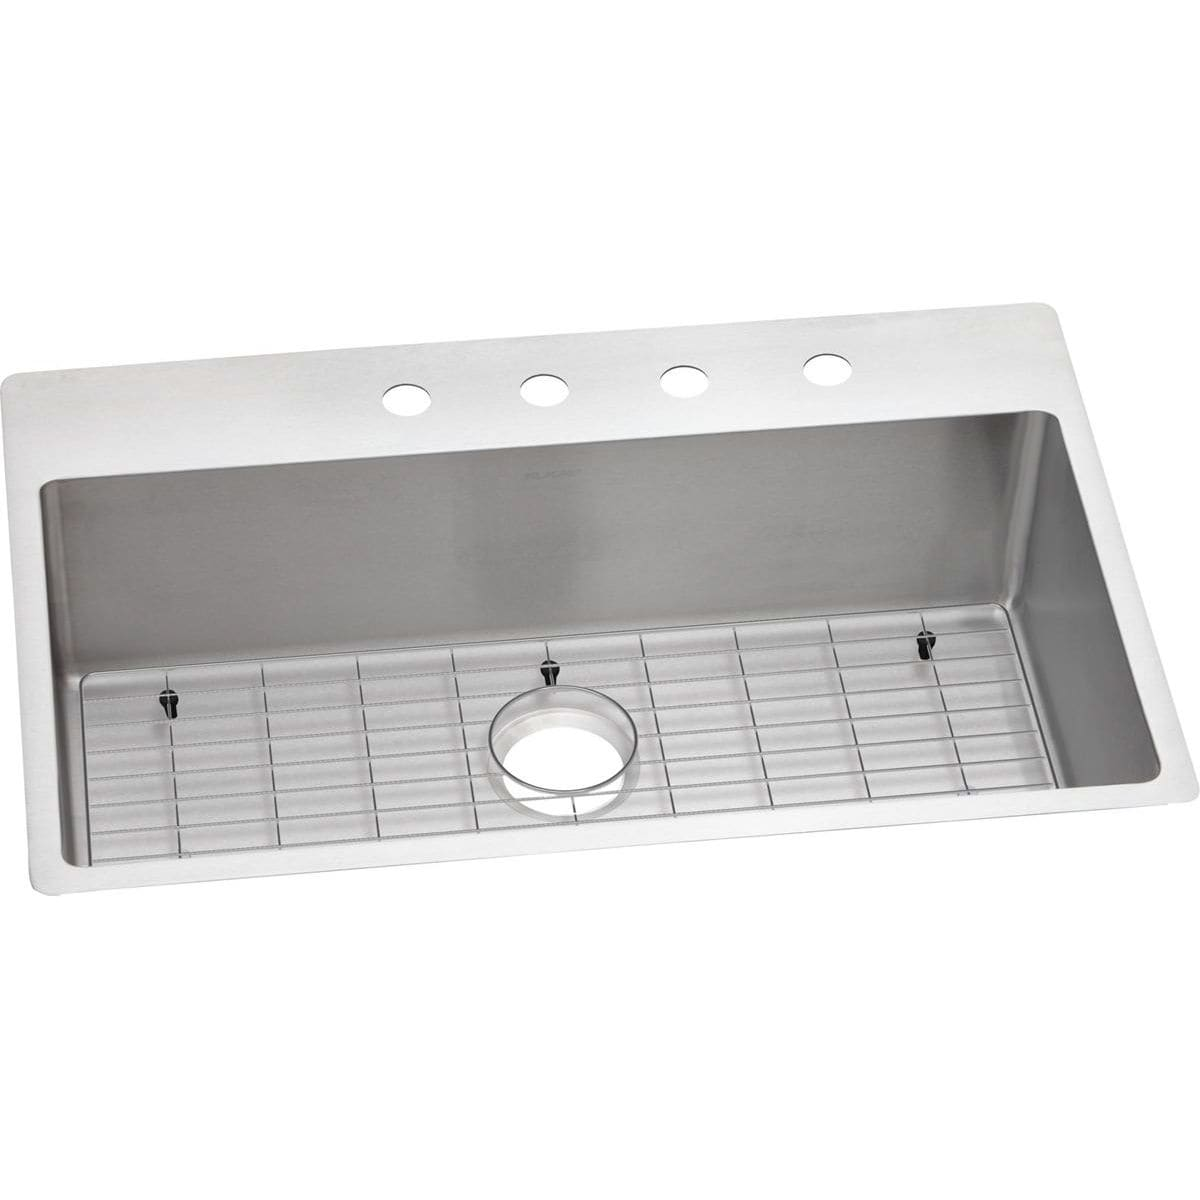 Elkay Ectsrs33229tbg4 4 Faucet Holes Crosstown 33 Drop In Single Basin Stainless Steel Kitchen Sink With Basin Rack Faucetdirect Com